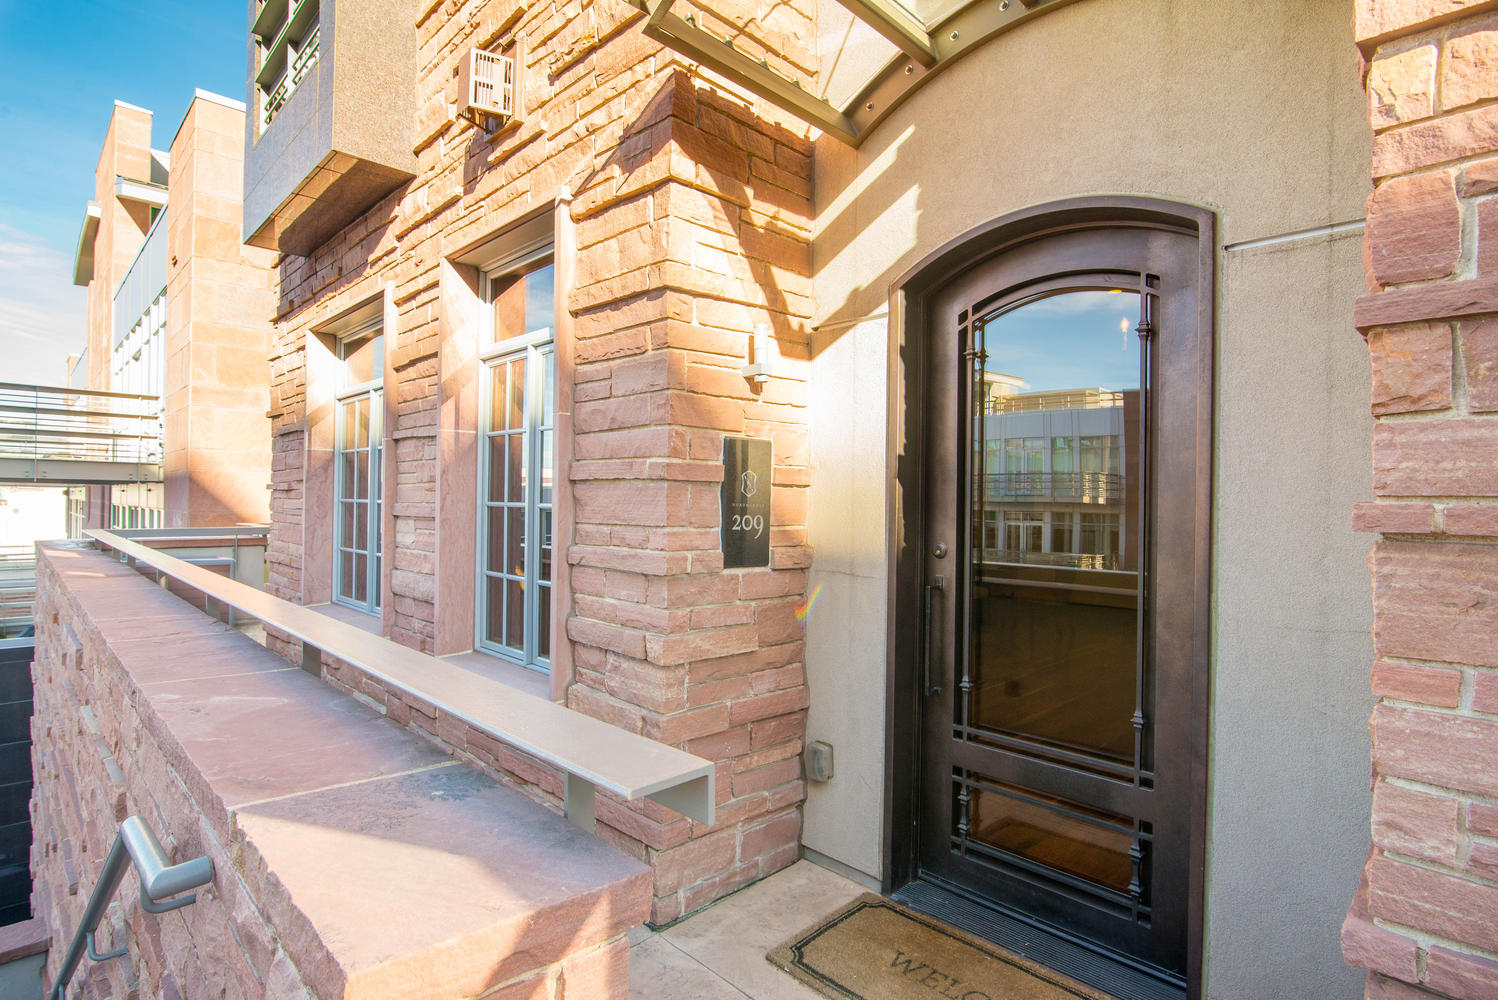 Townhouse for Sale at Modern and elegant at Cherry Creek;s most exclusive address 105 Fillmore St #209 Denver, Colorado 80206 United States